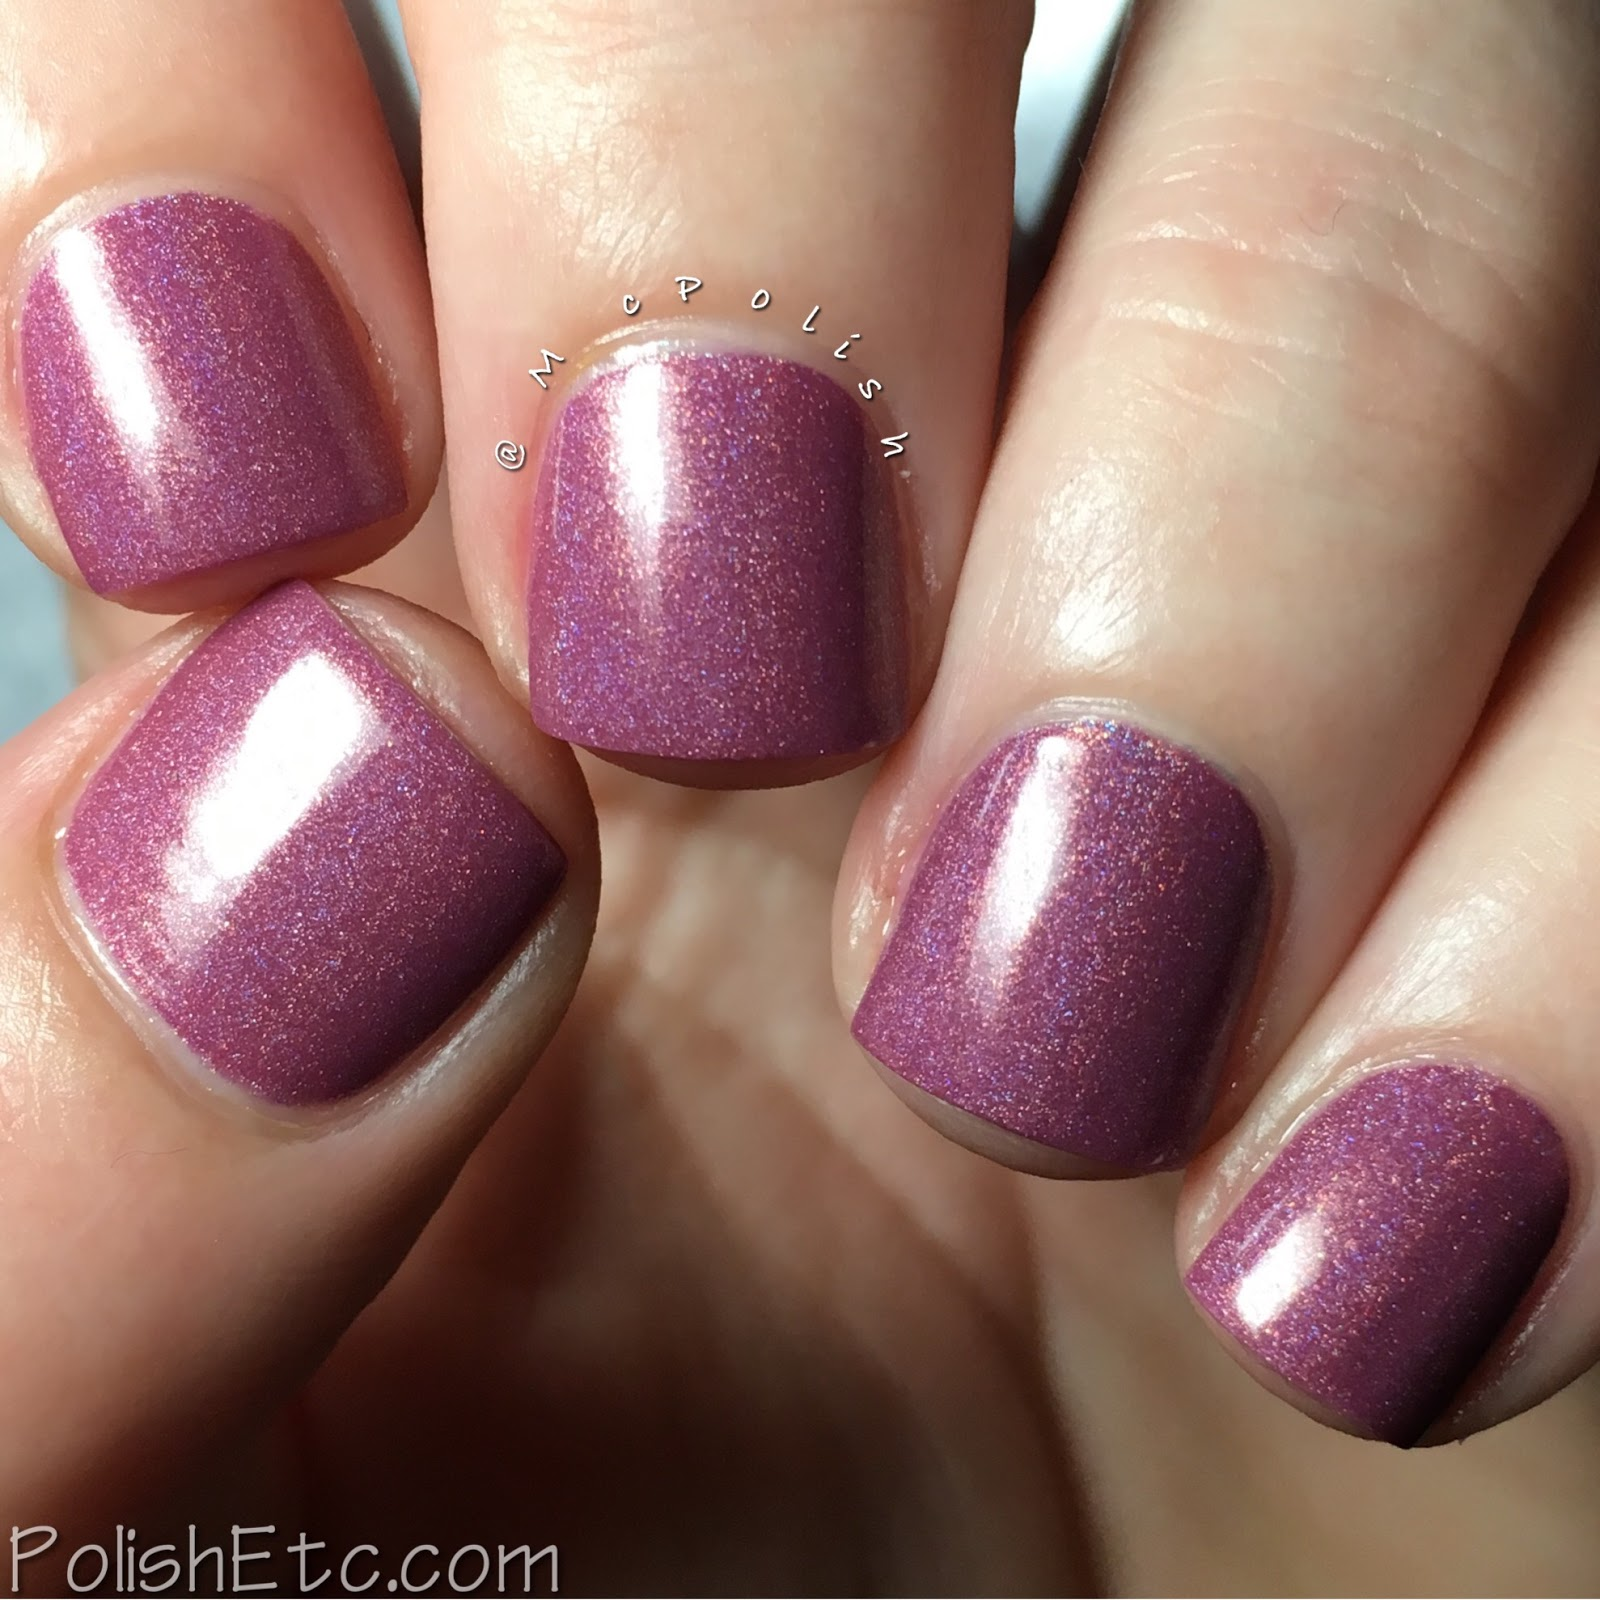 Chirality Polish - Mosura no Uta Collection - McPolish - Mosura